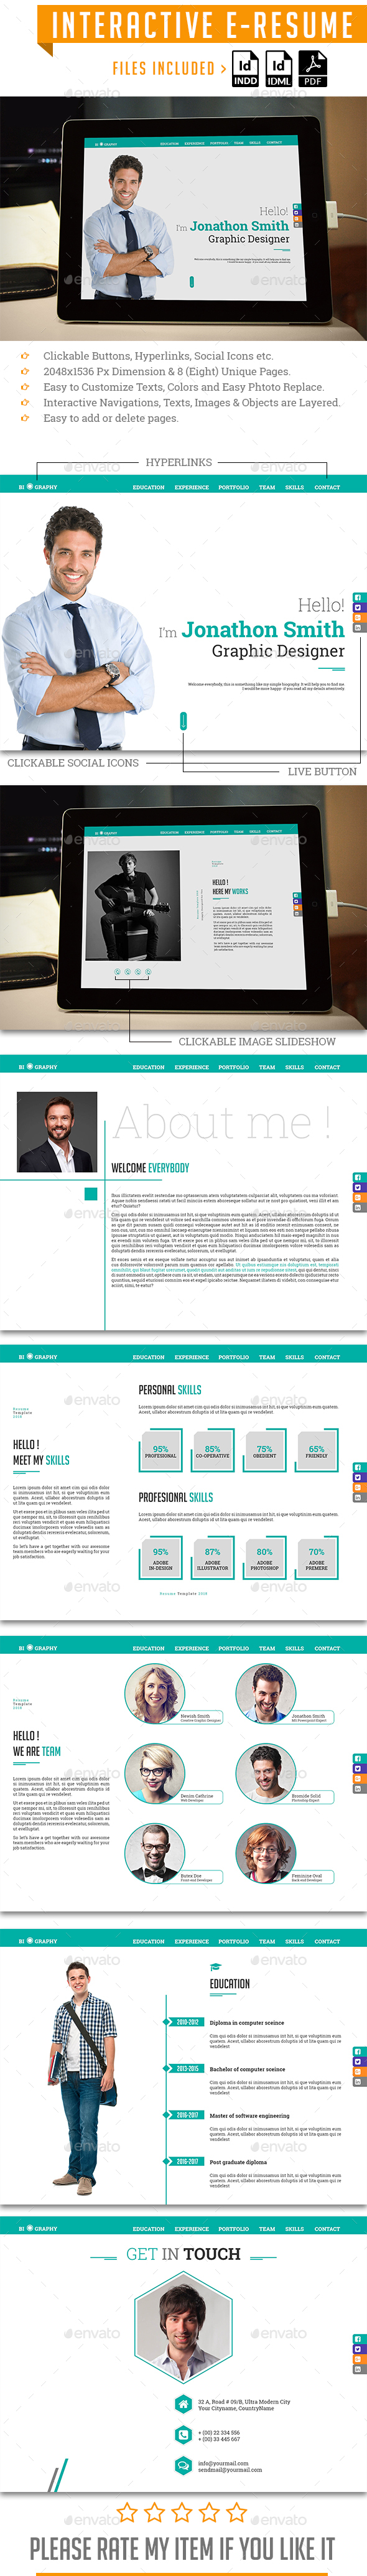 Interactive E-Resume - ePublishing